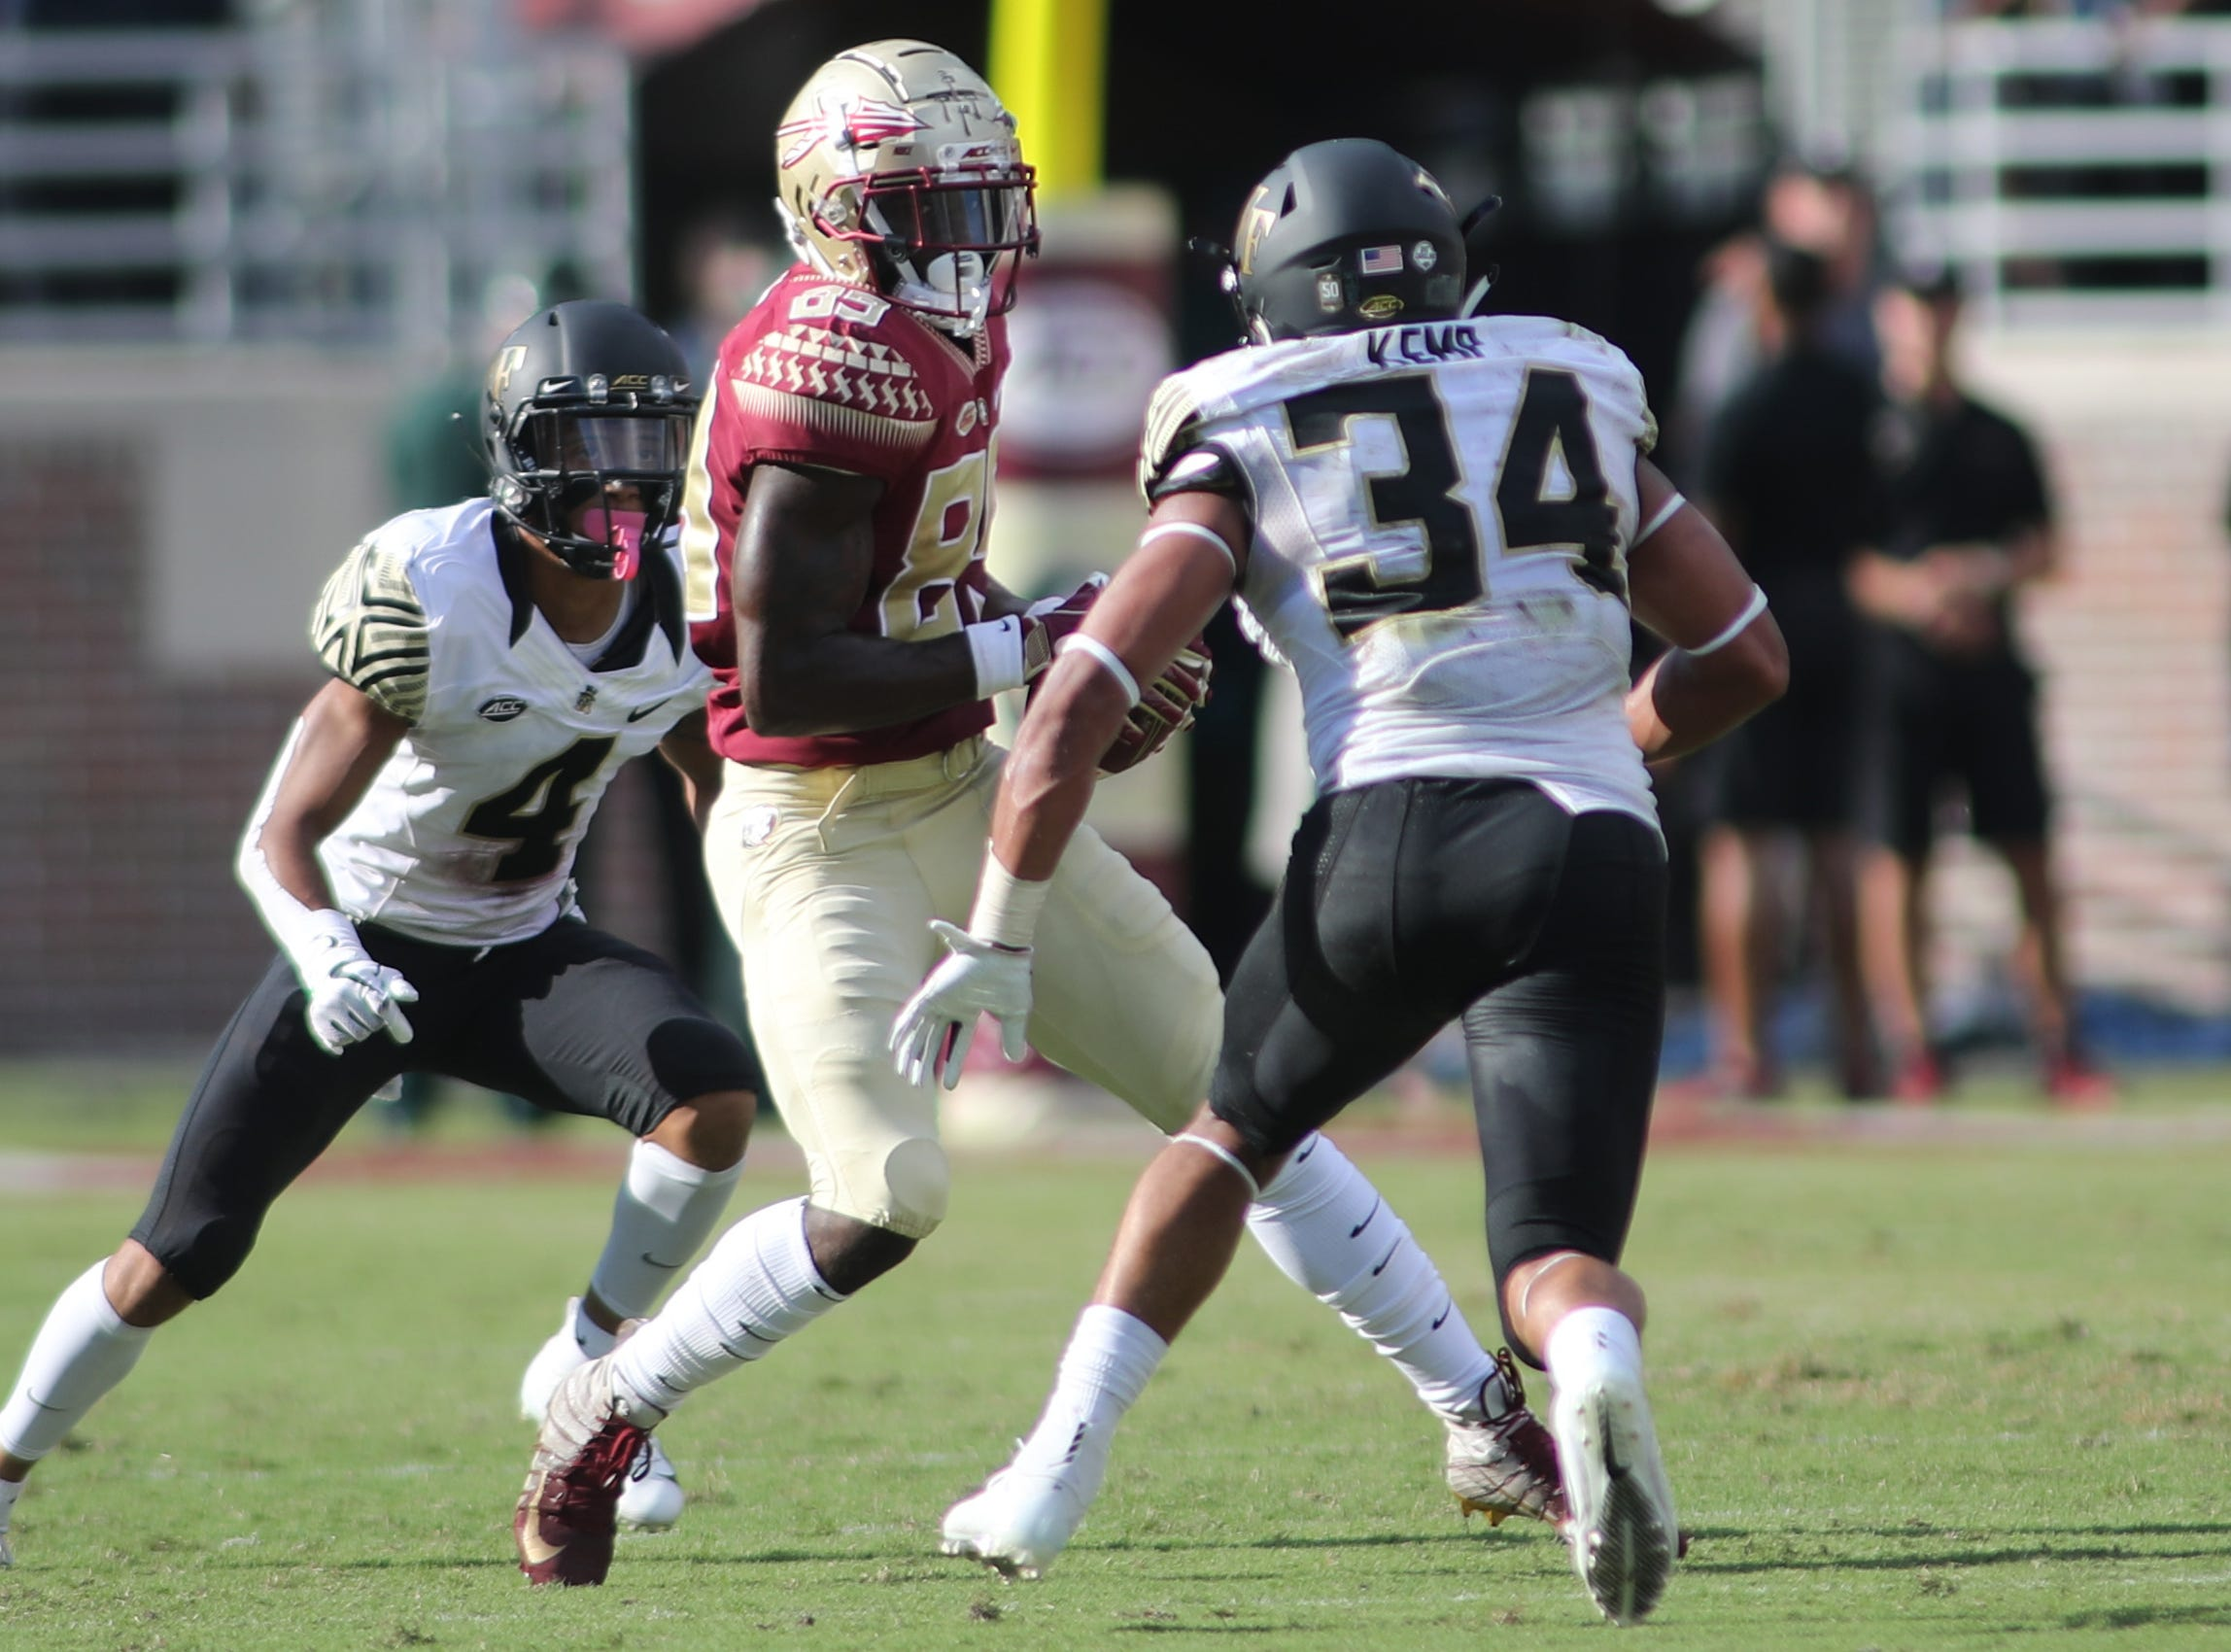 Florida State Seminoles wide receiver Keith Gavin (89) runs the ball during FSU's homecoming game against Wake Forest at Doak S. Campbell Stadium Saturday, Oct. 20, 2018.